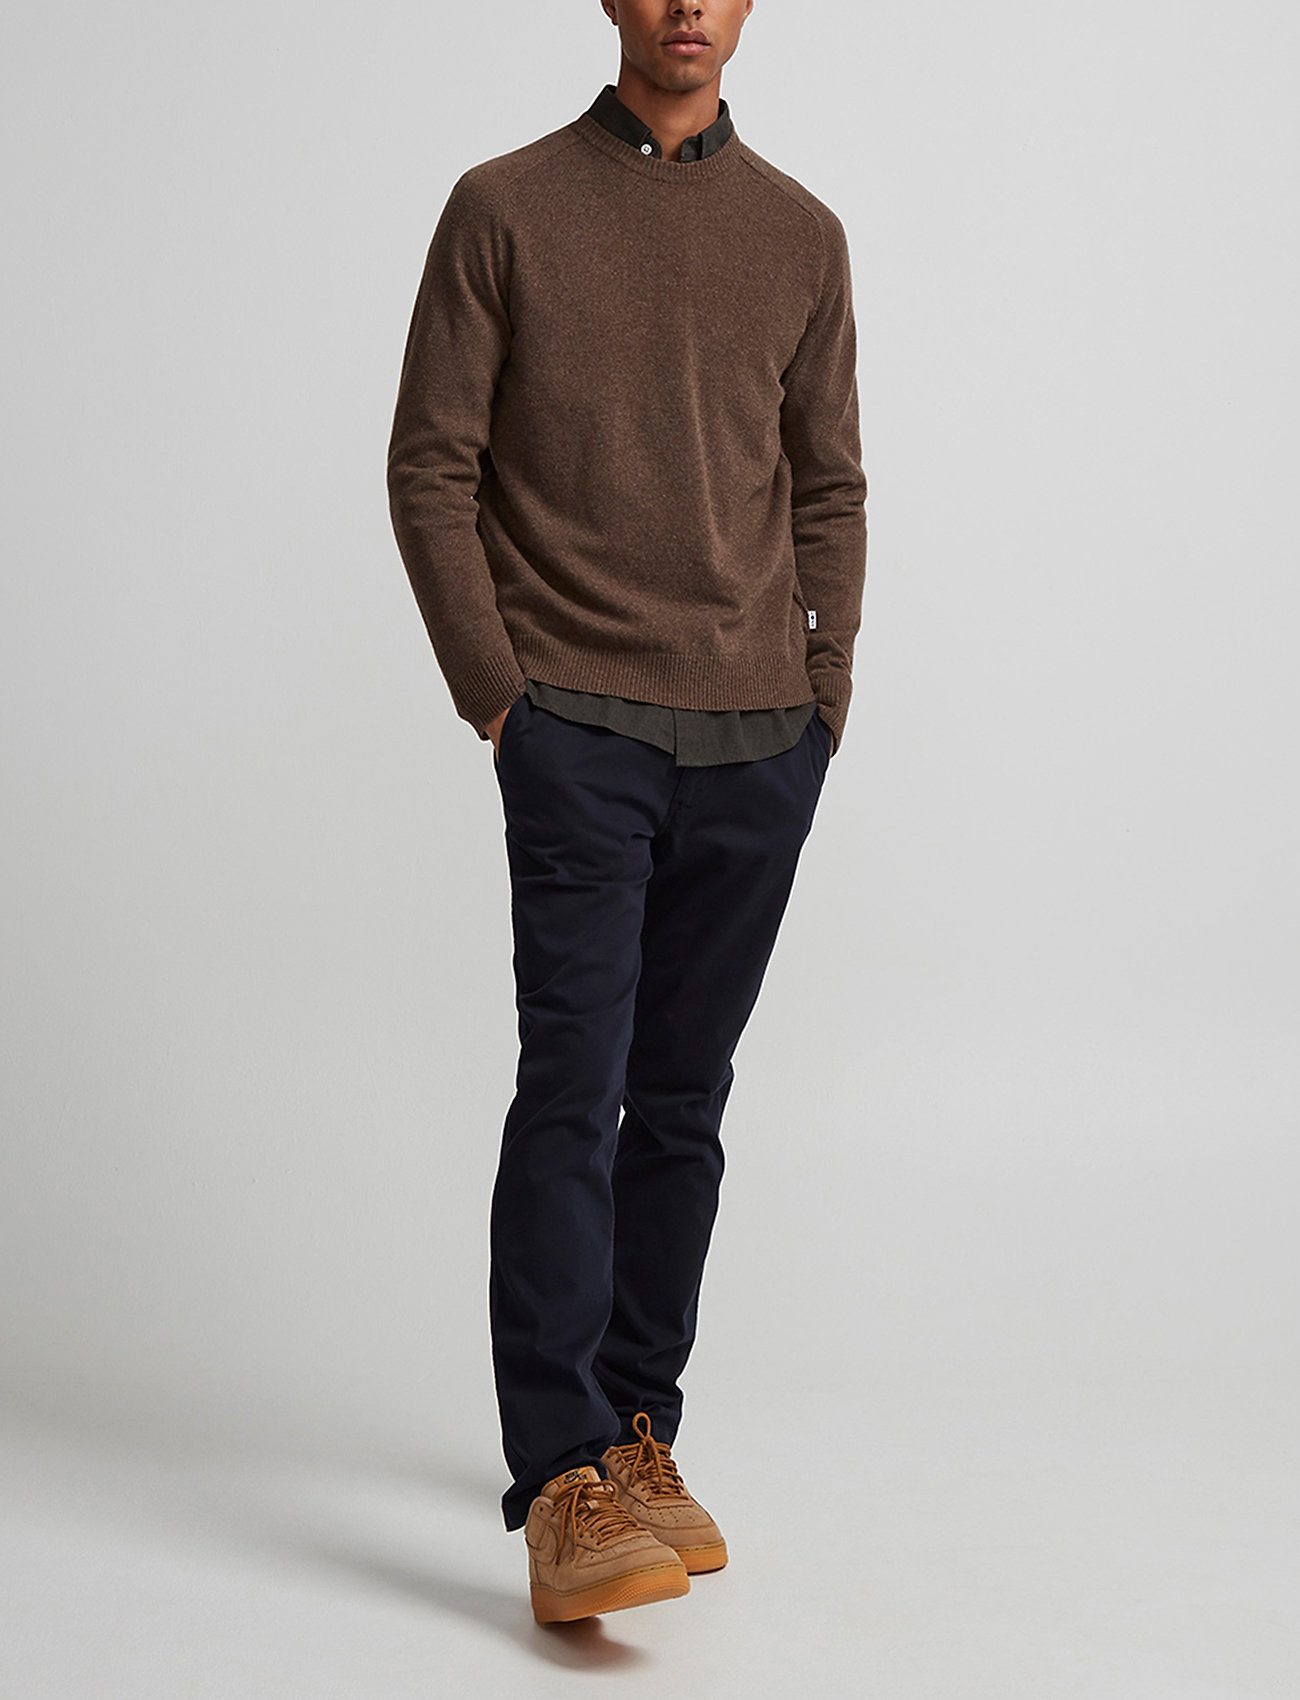 NN07 - Edward 6333 - basic knitwear - brown melange